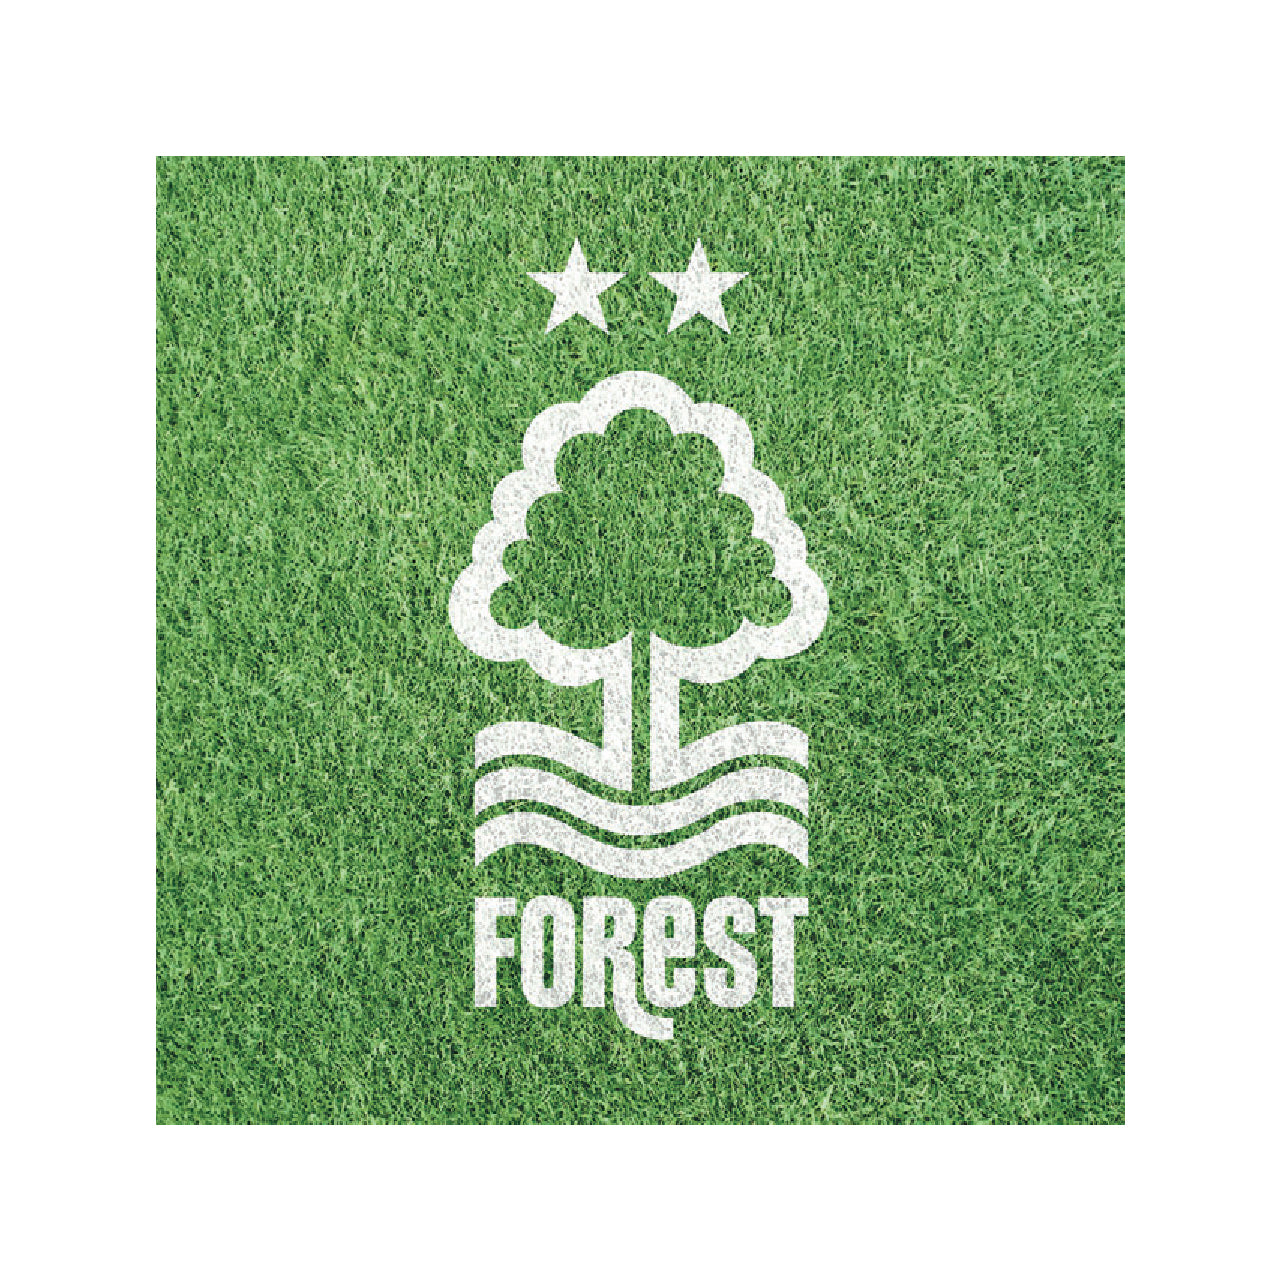 NFFC Crest on Astroturf Card - Nottingham Forest